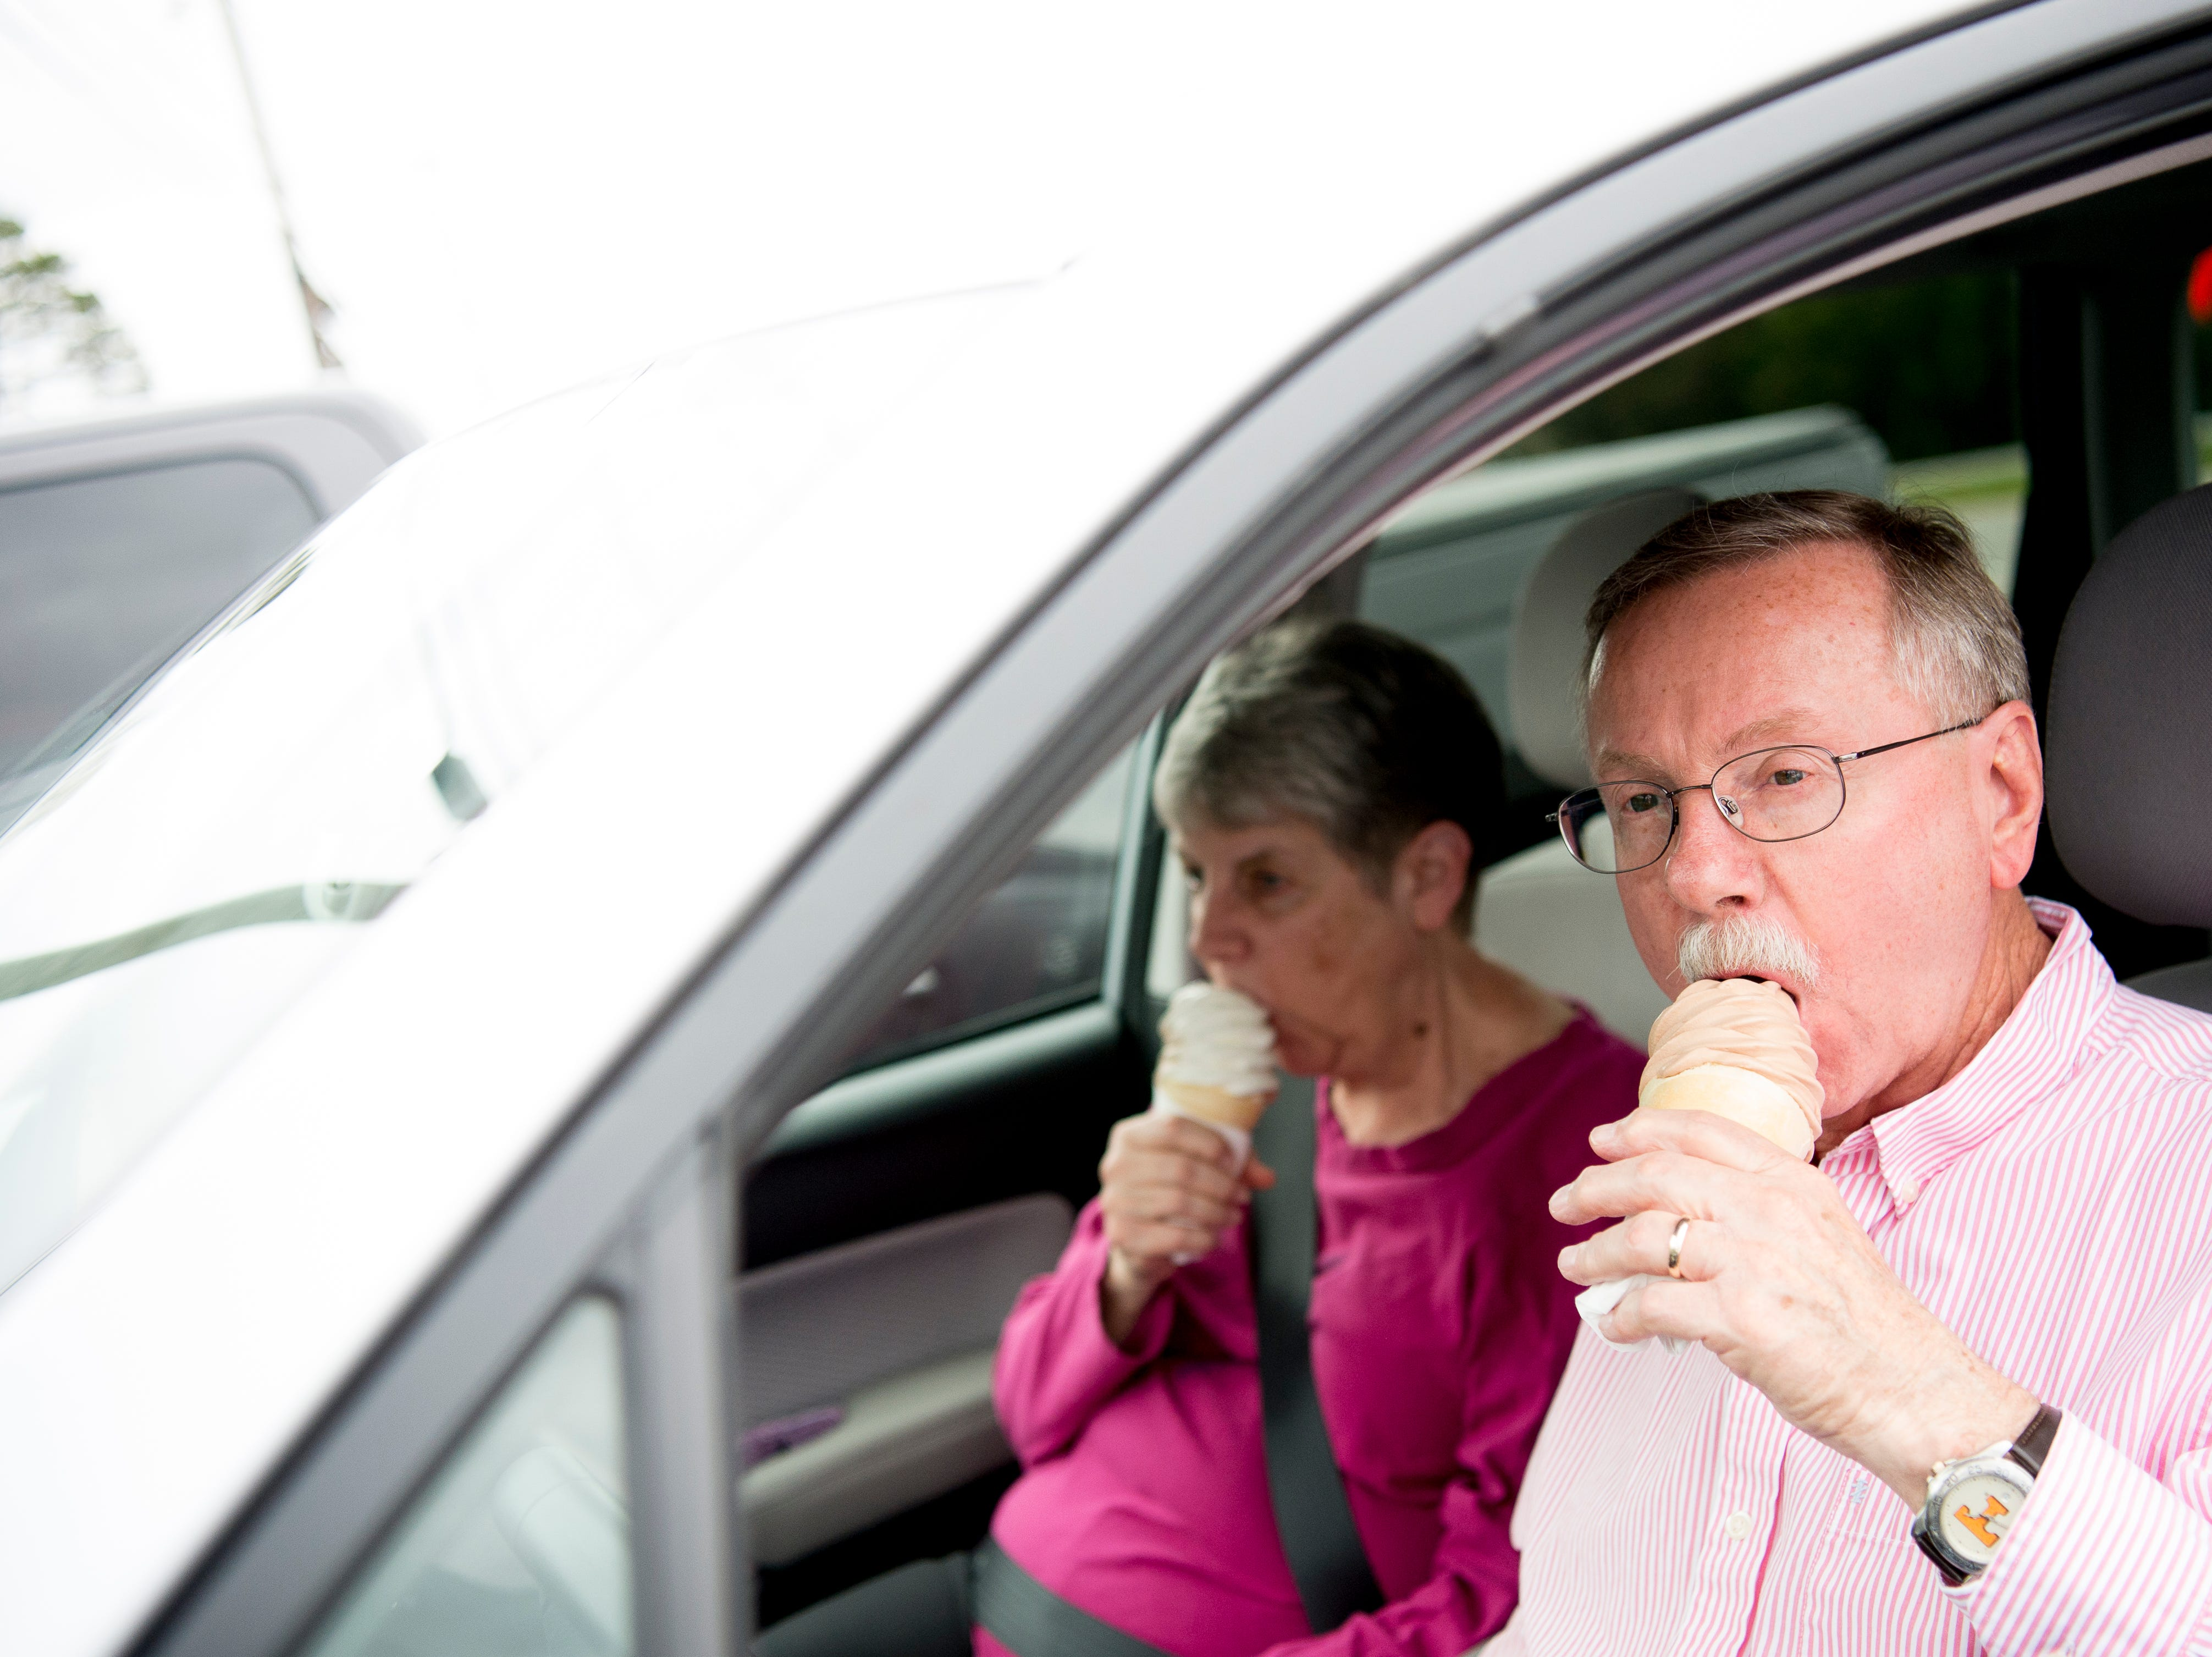 Ray and Alice Petty, from Knoxville, enjoy an ice cream cone at Cardin's Drive-In on Asheville Highway in Knoxville, Tennessee on Friday, April 5, 2019. They said they will stop at Cardin's occasionally for an ice cream when passing by, and look forward to trying the burgers and fries at their next visit. The popular drive-in is celebrating 60 years of business this Saturday with sixty cent ice cream cones.